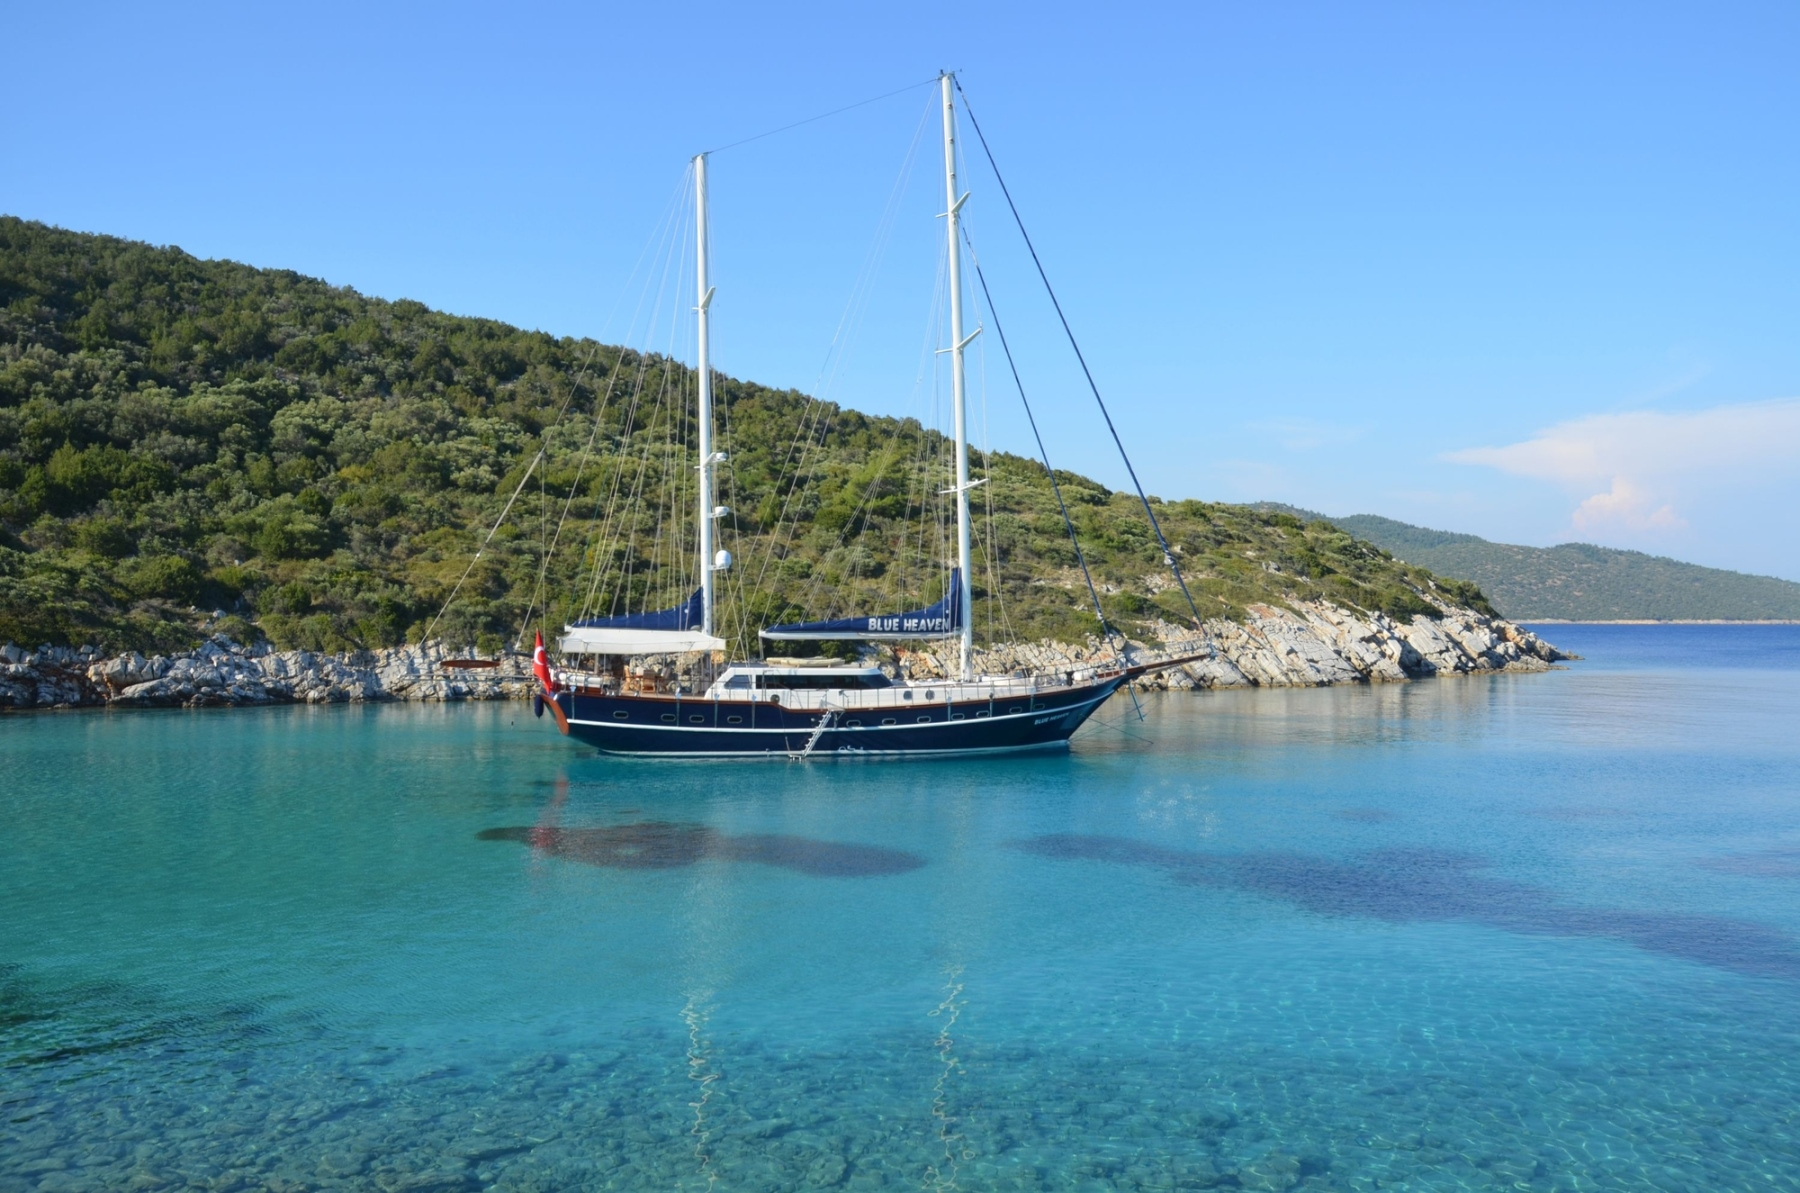 S/Y BLUE HEAVEN - Anchored